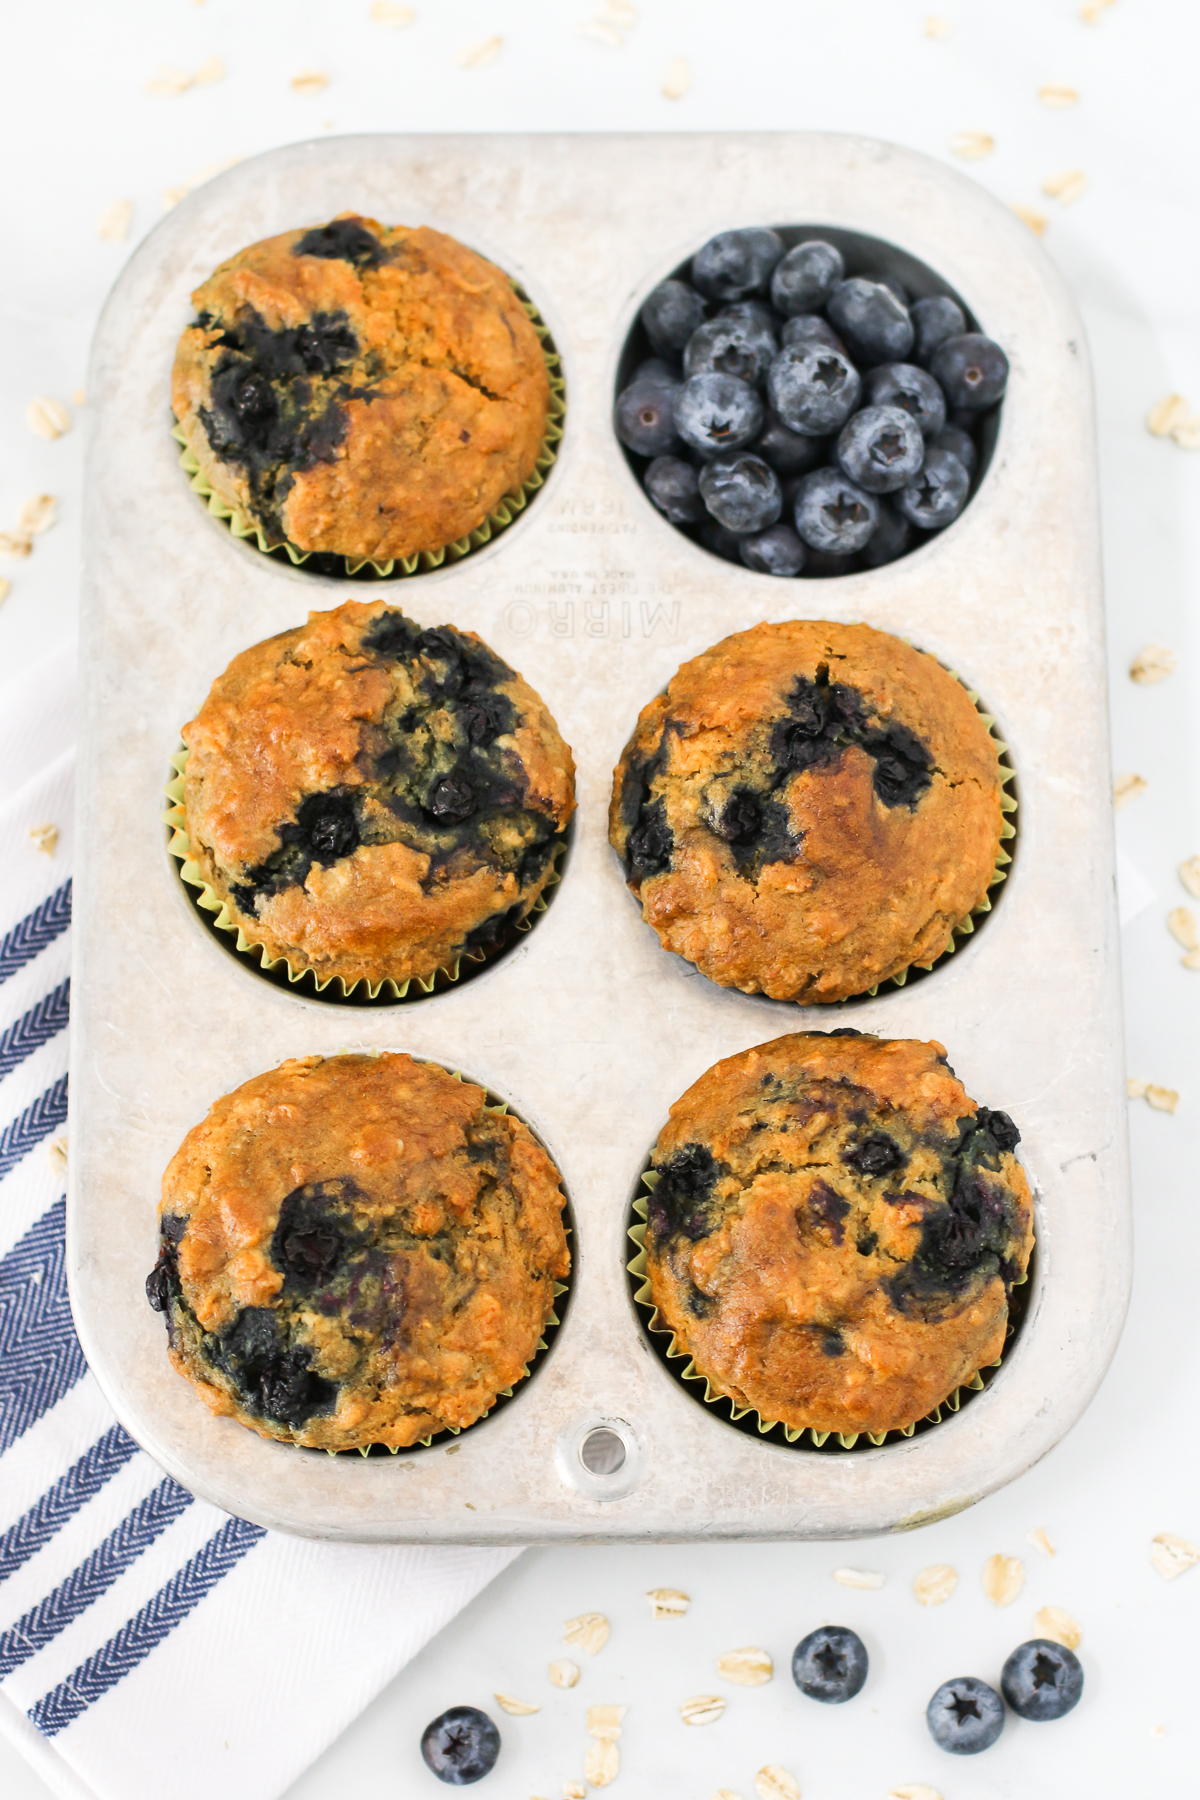 Gluten Free Vegan Blueberry Oatmeal Muffins. You are going to be quite smitten with these hearty blueberry oatmeal muffins!